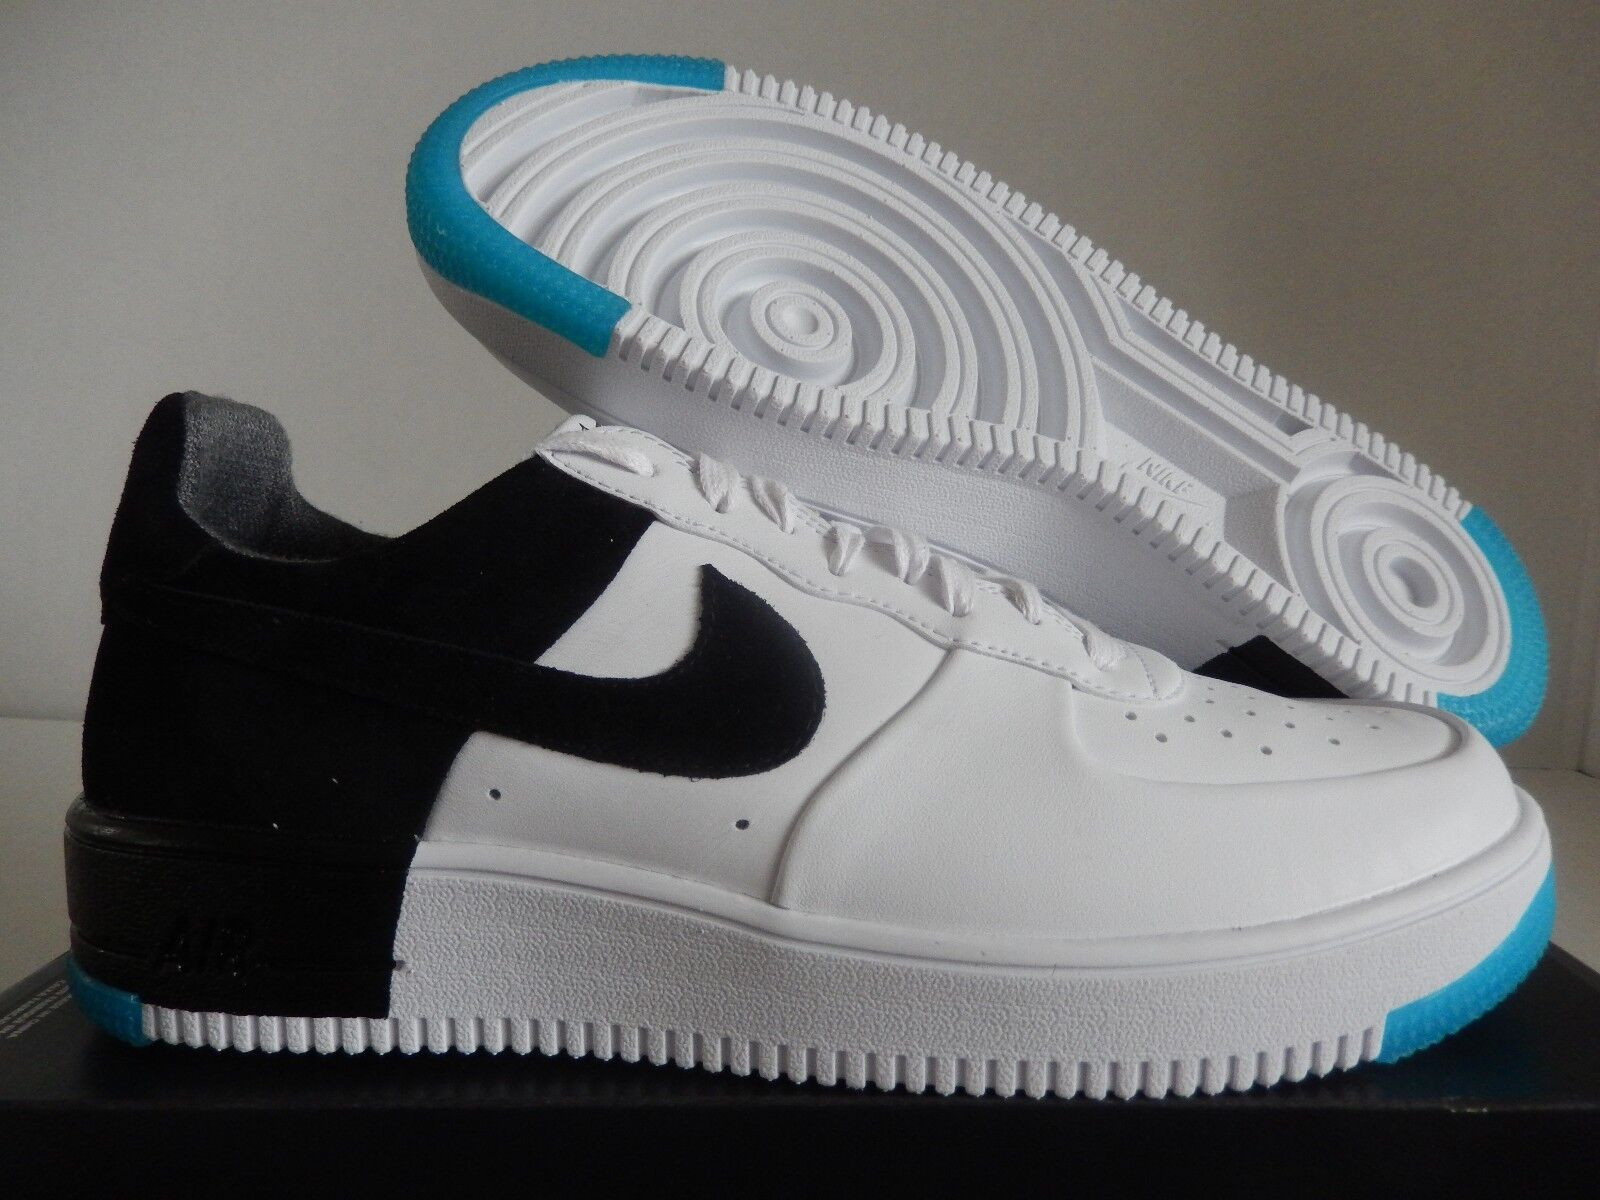 NIKE AIR FORCE 1 ULTRAFORCE N7 WHITE-BLACK-DARK TURQUOISE SZ 9.5 [873309-103]